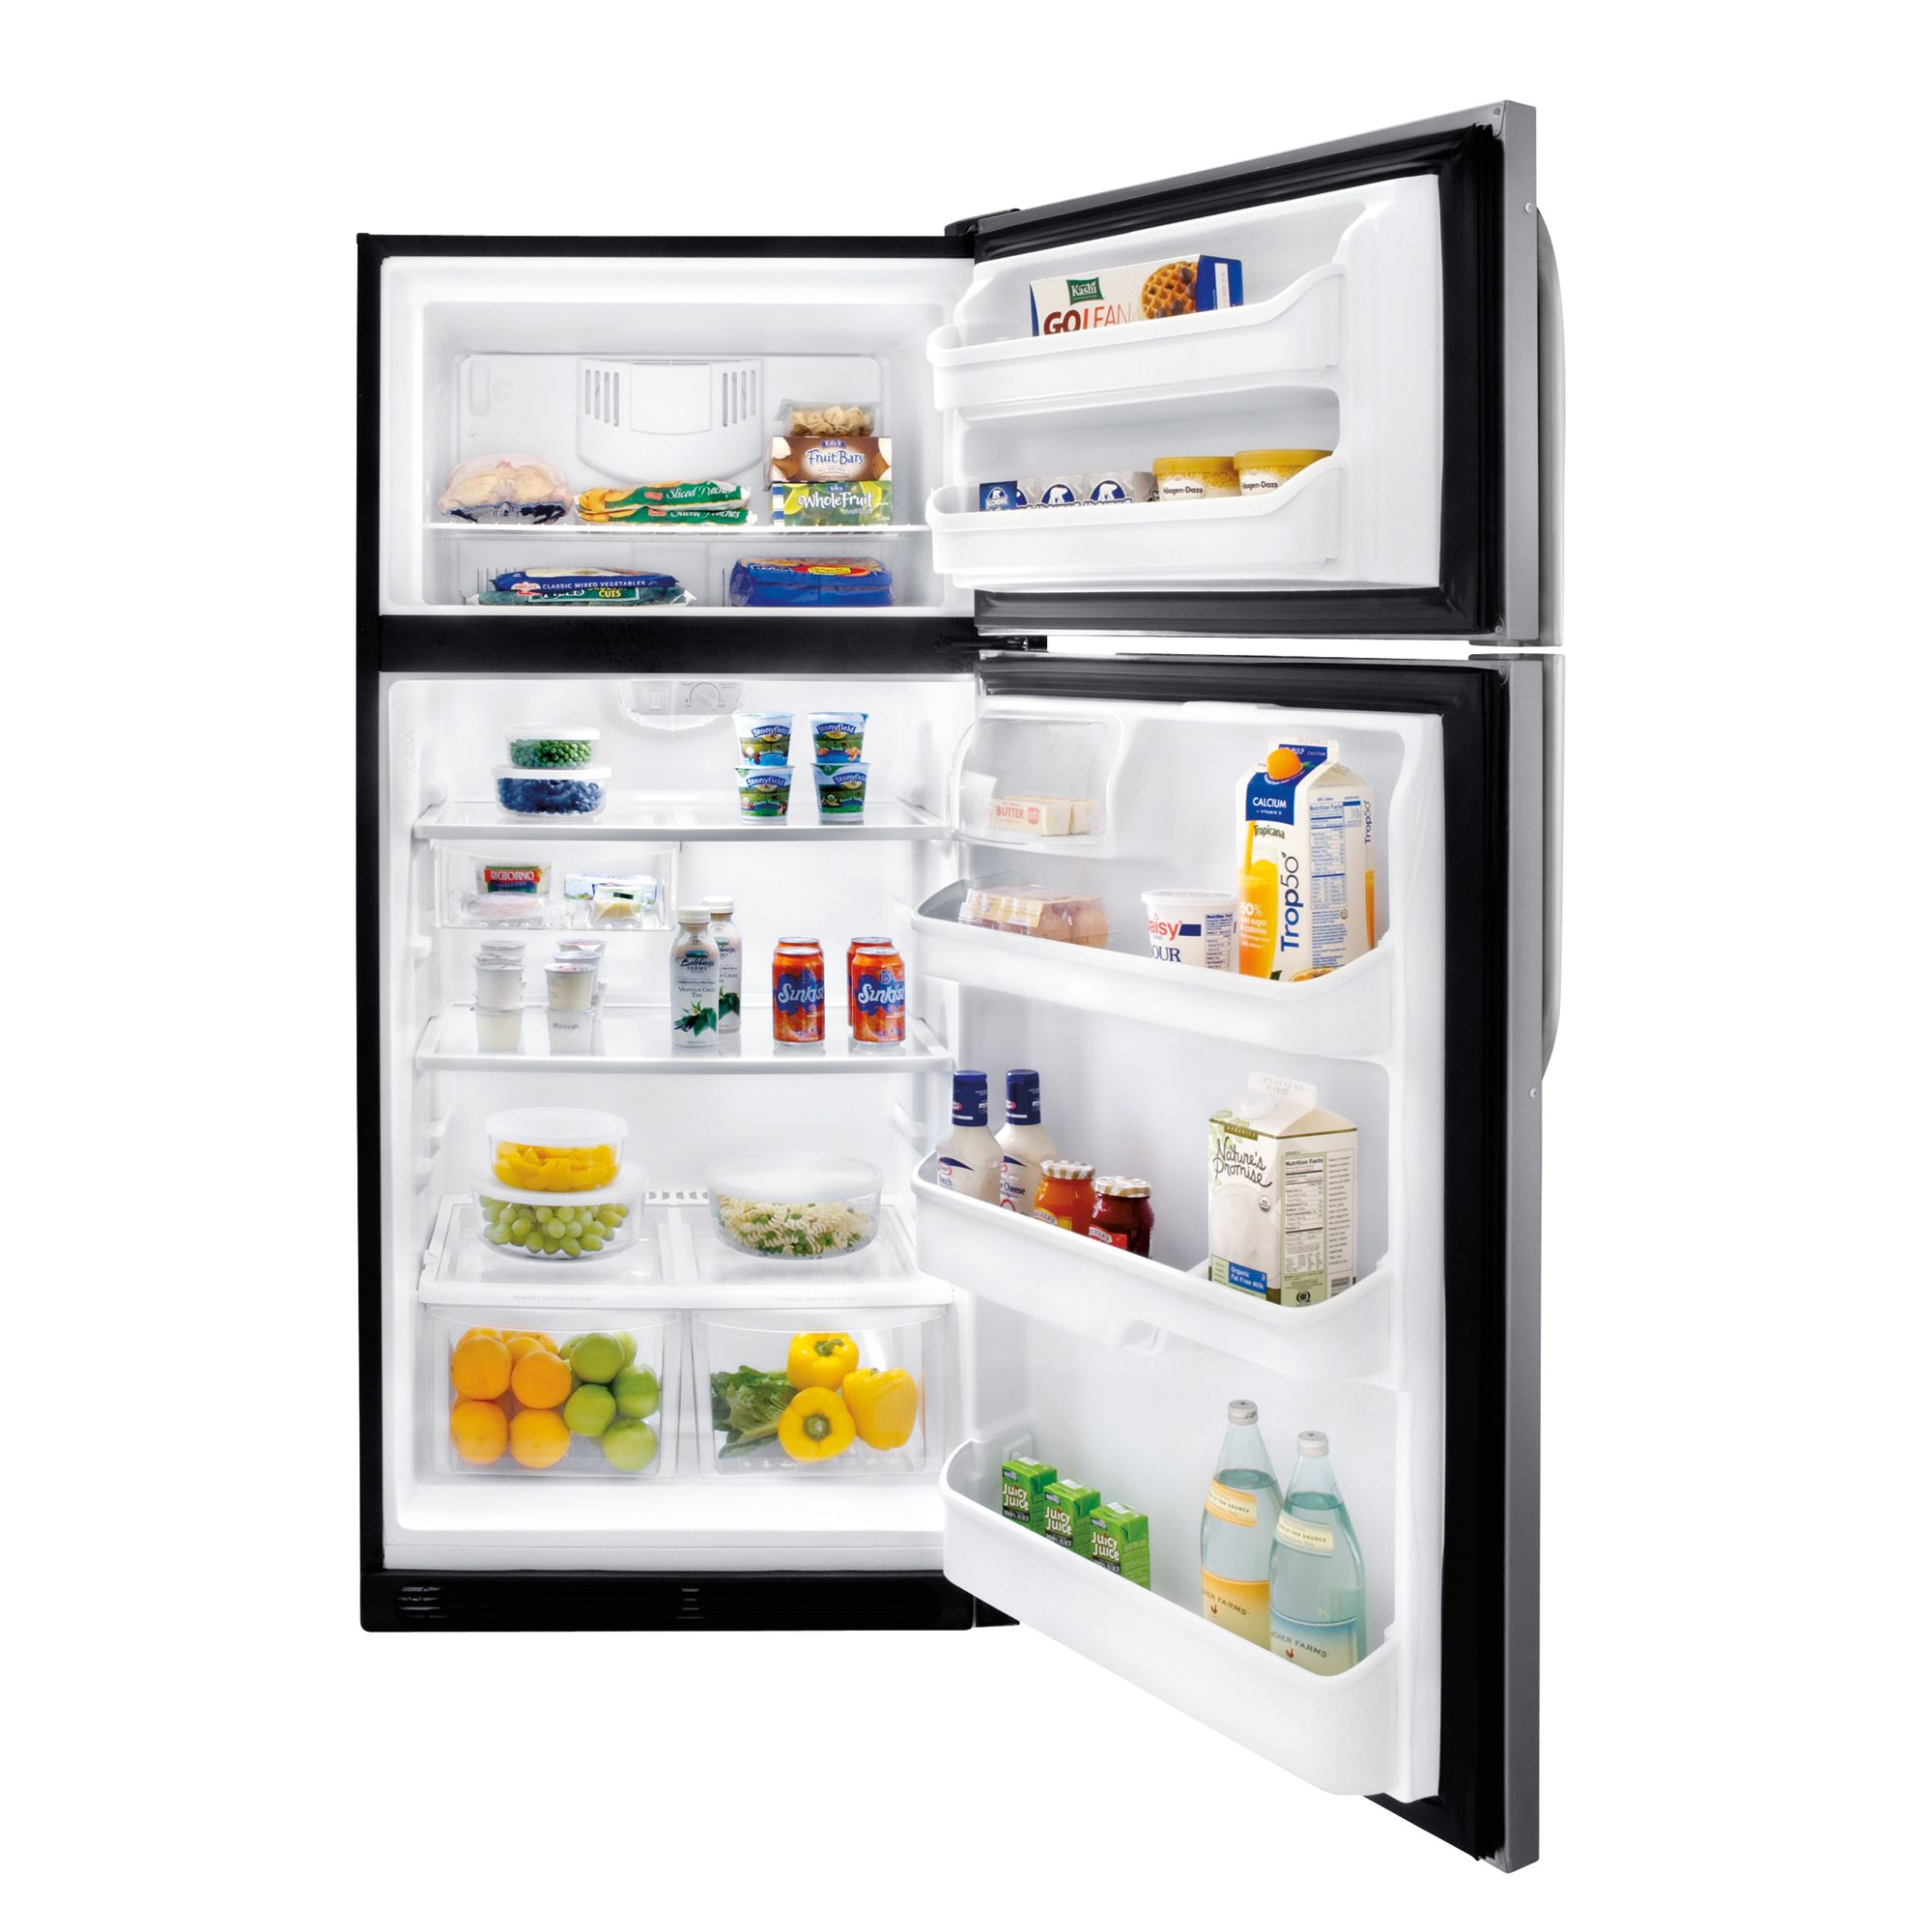 A well-known brand 18.2 cu. ft. Top Freezer Refrigerator